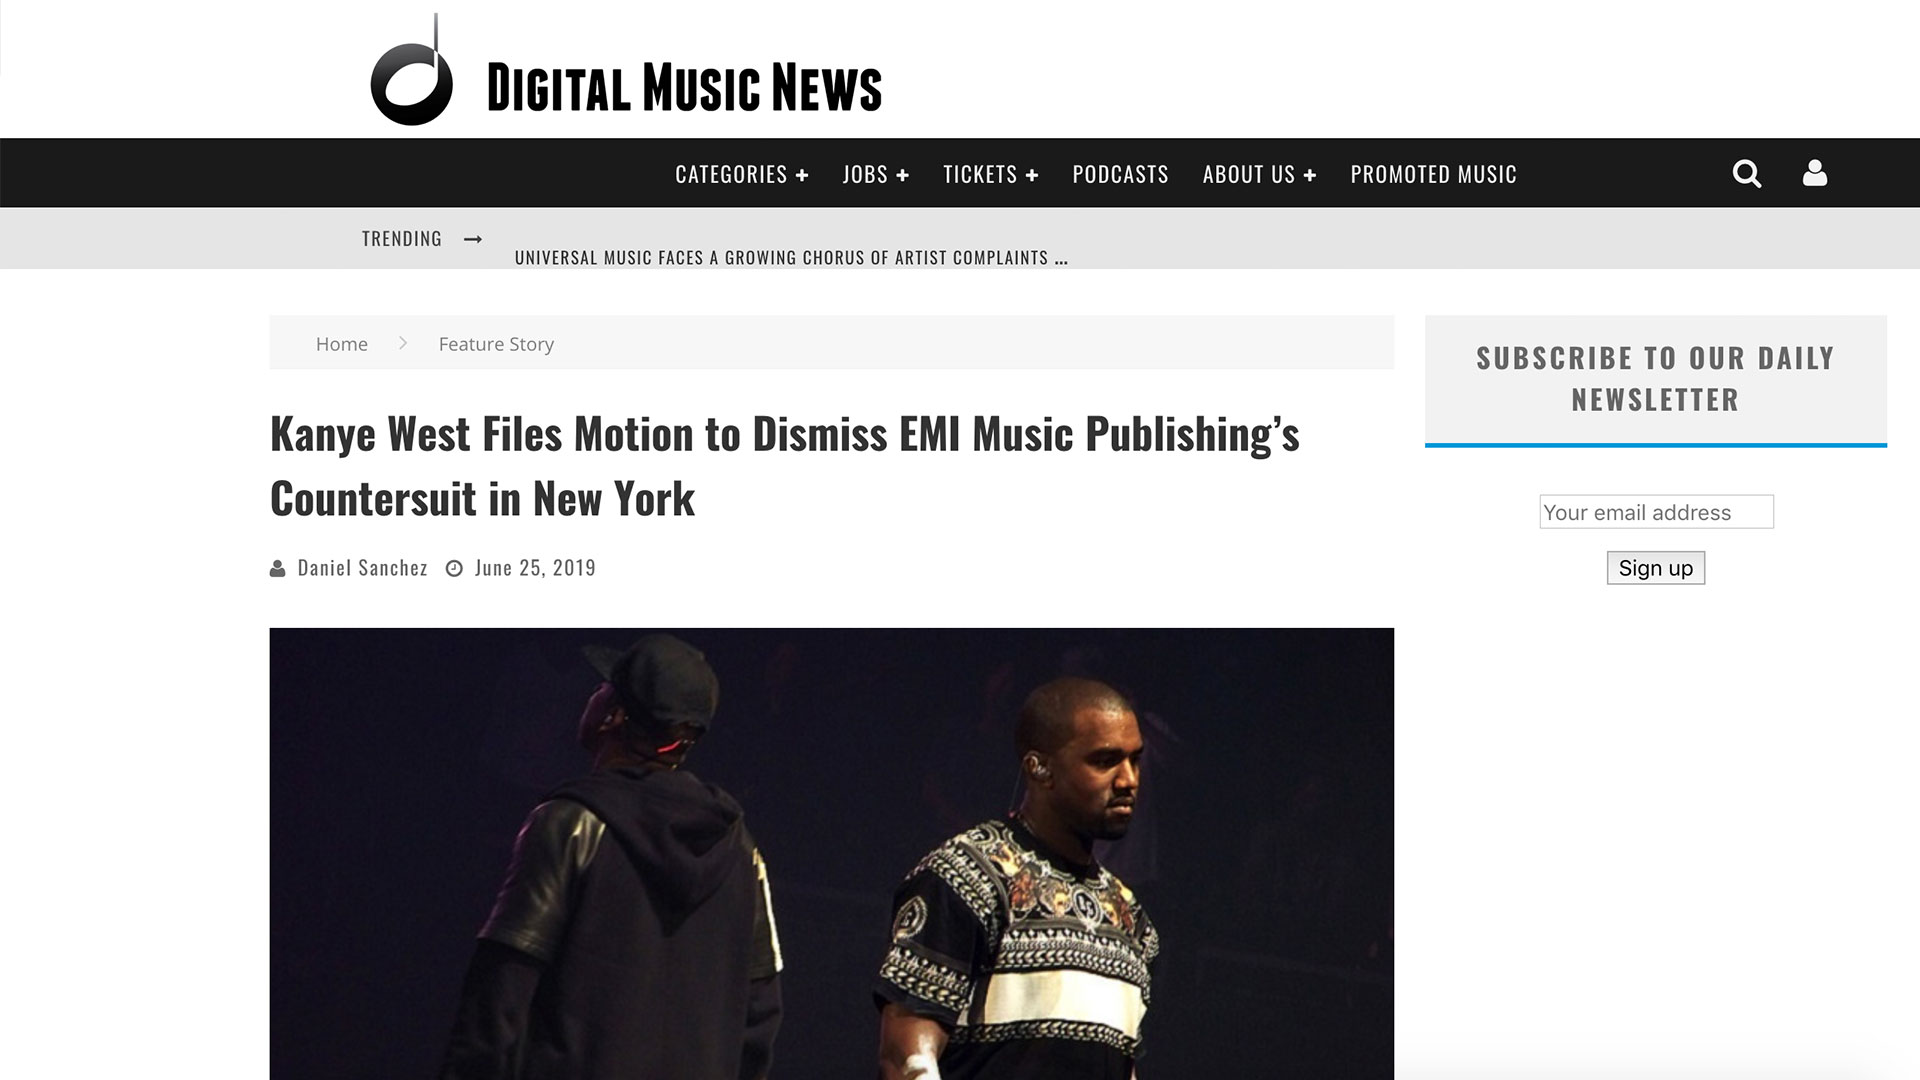 Fairness Rocks News Kanye West Files Motion to Dismiss EMI Music Publishing's Countersuit in New York